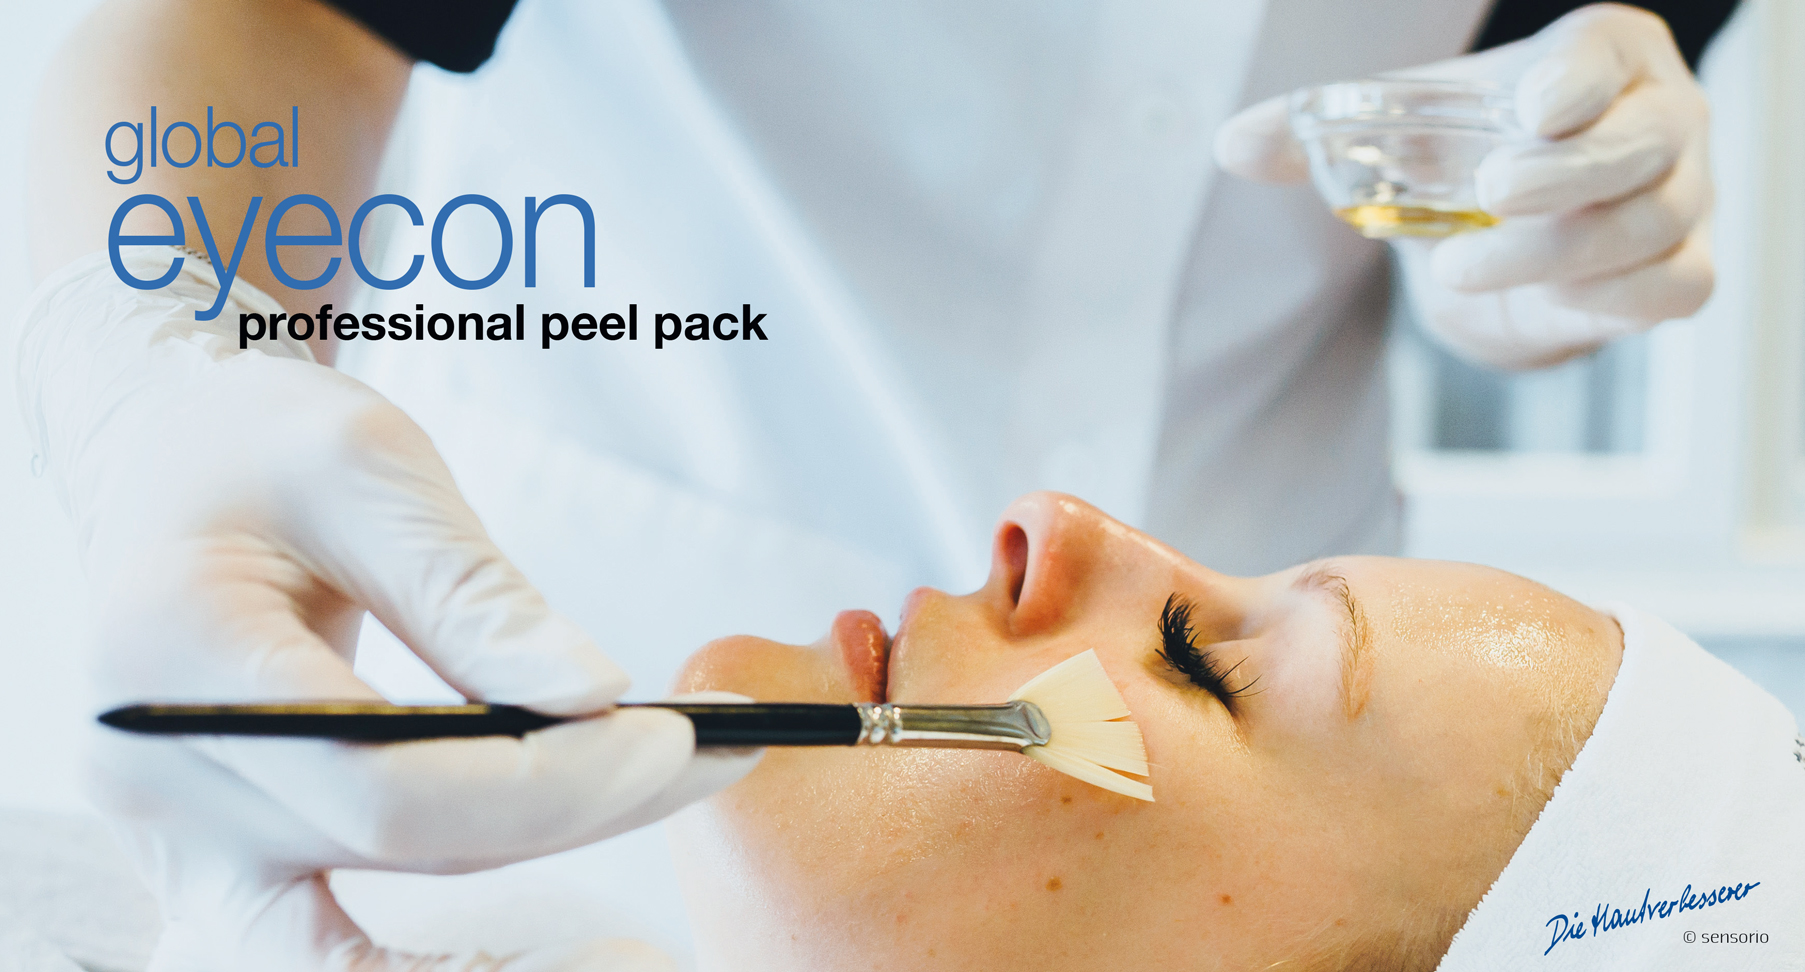 global eyecon Augenpeeling Behandlung